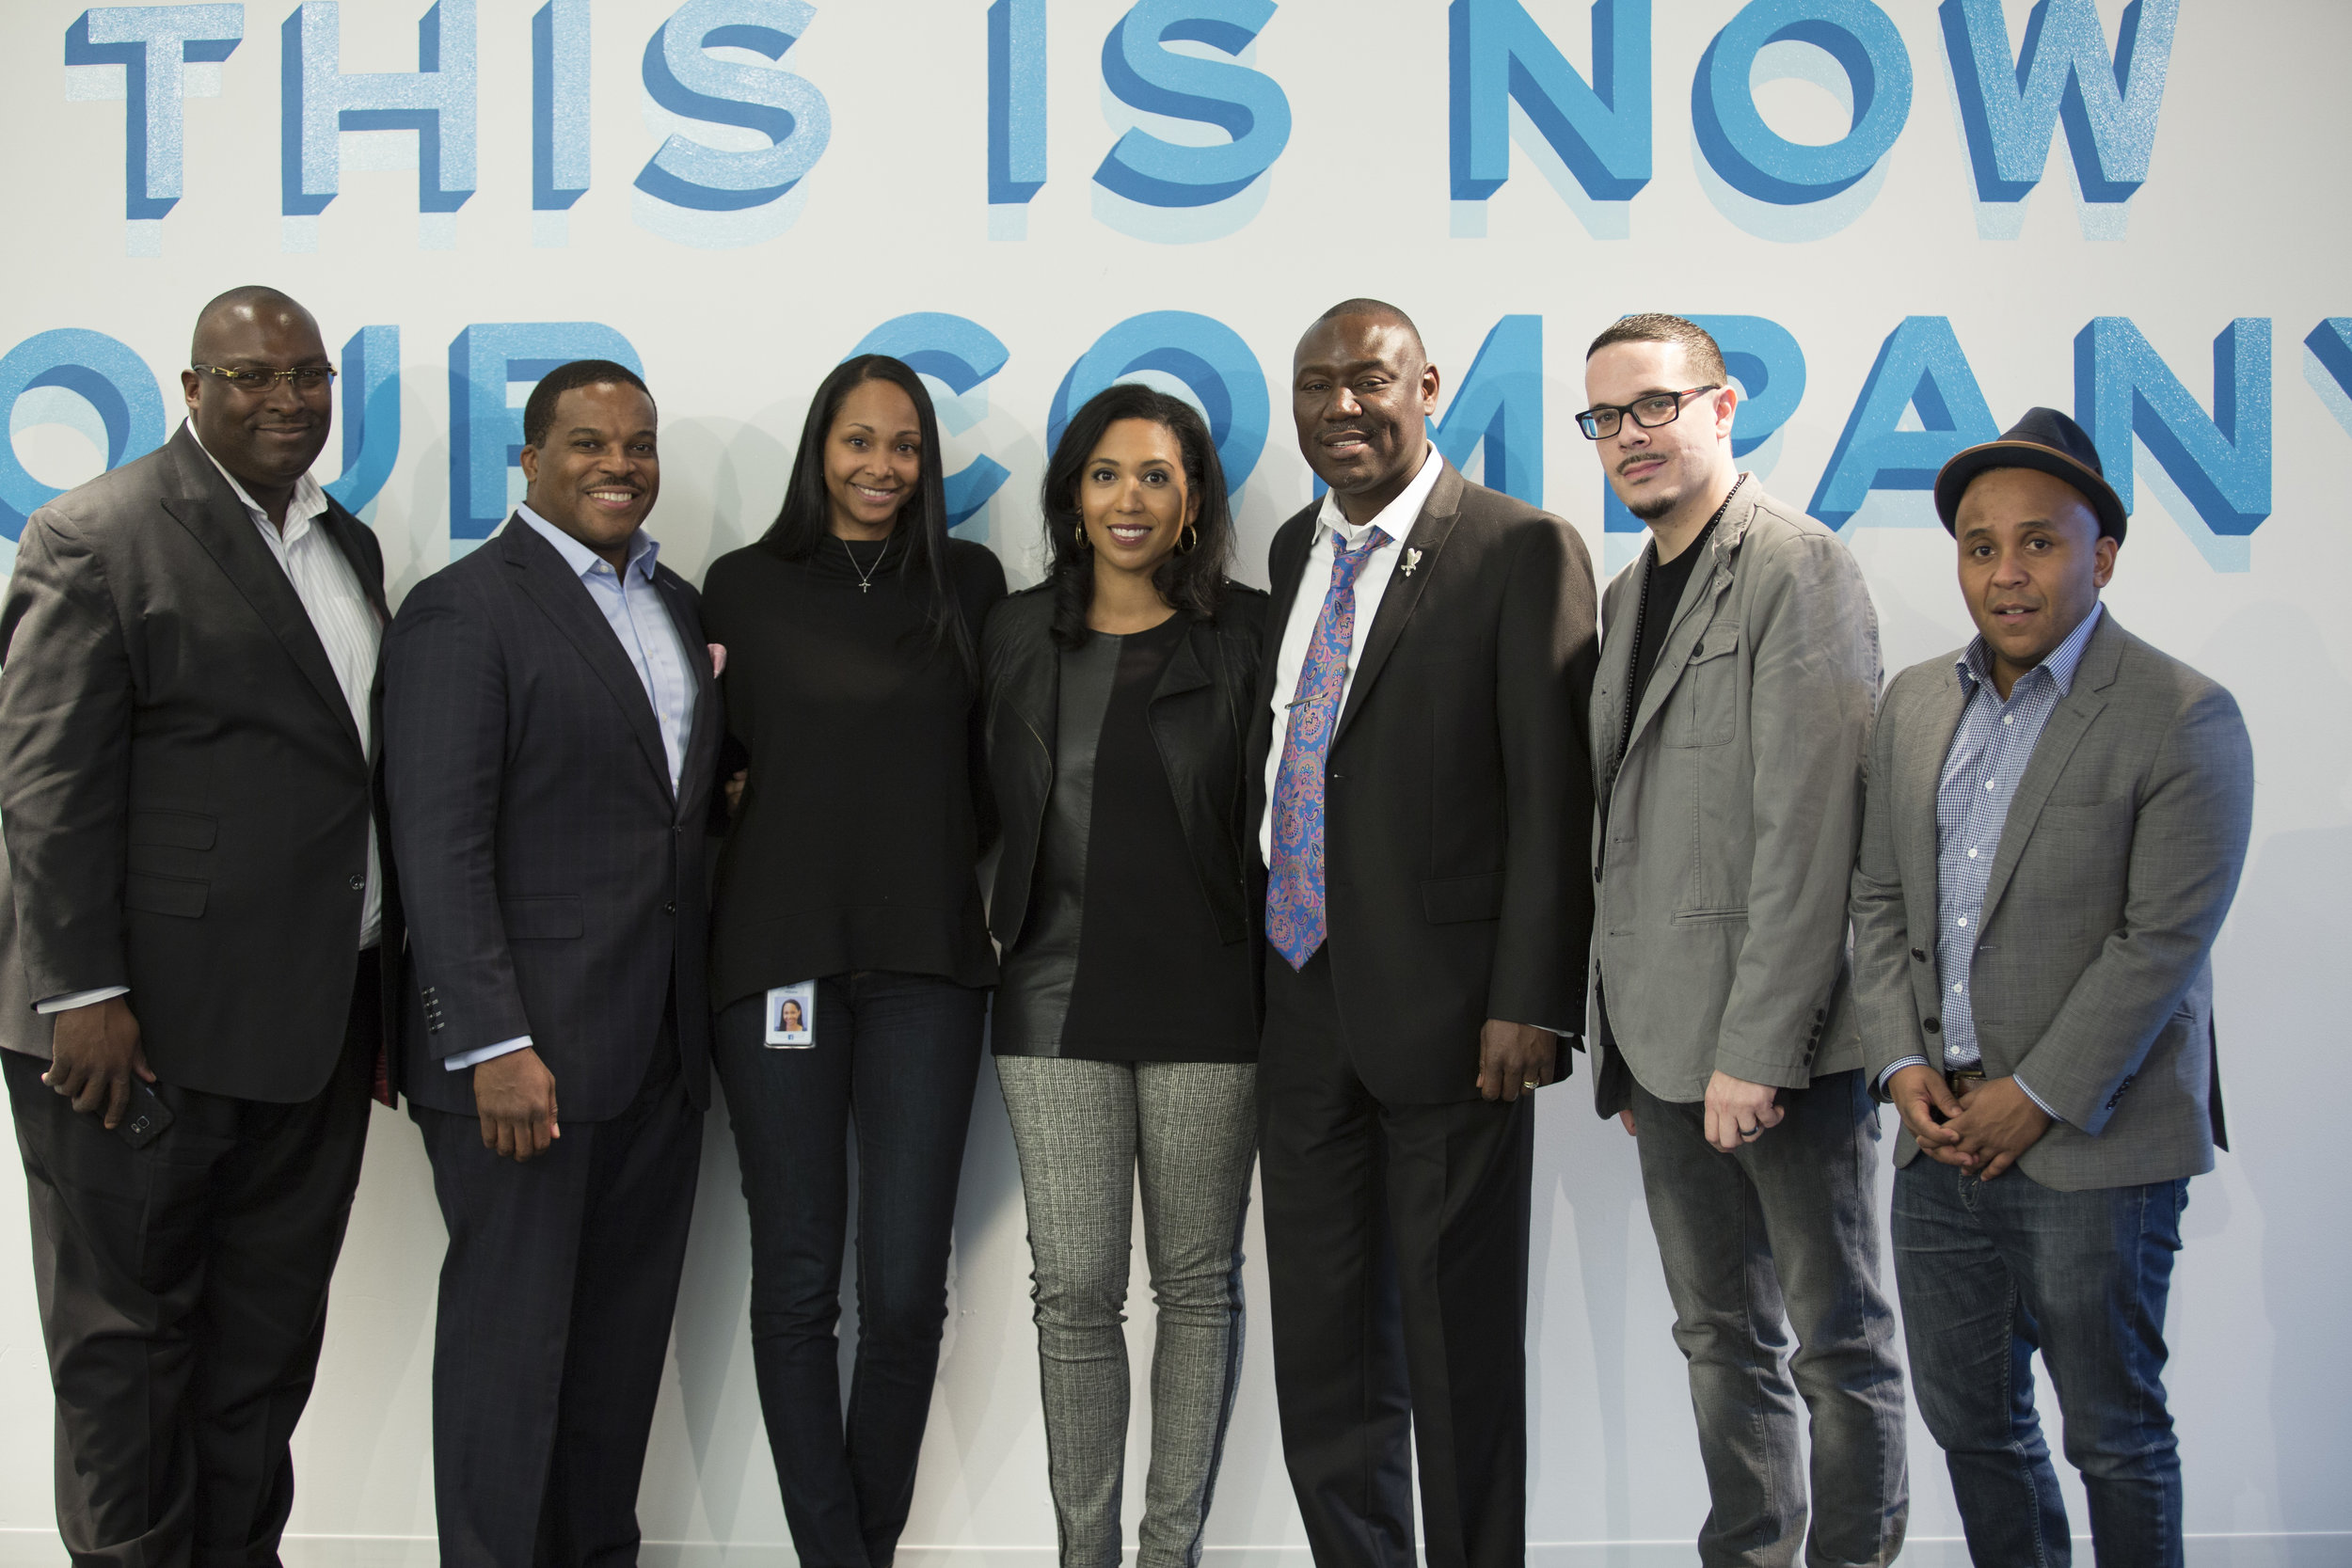 """Facebook Black History Month panel, """"Black Lives Matter 2,"""" organized by Bari, and sponsored by Black@, Facebook's Black employee resource group. Panelists include (left to right): Daryl Parks, Esq., Eric L. Welch Guster, Esq., Bari, Prof. Leah Wright Rigueur, Benjamin Crump, Esq., Shaun King, and Rashad Robinson.  Photo Credit: Netta Conyers-Haynes"""